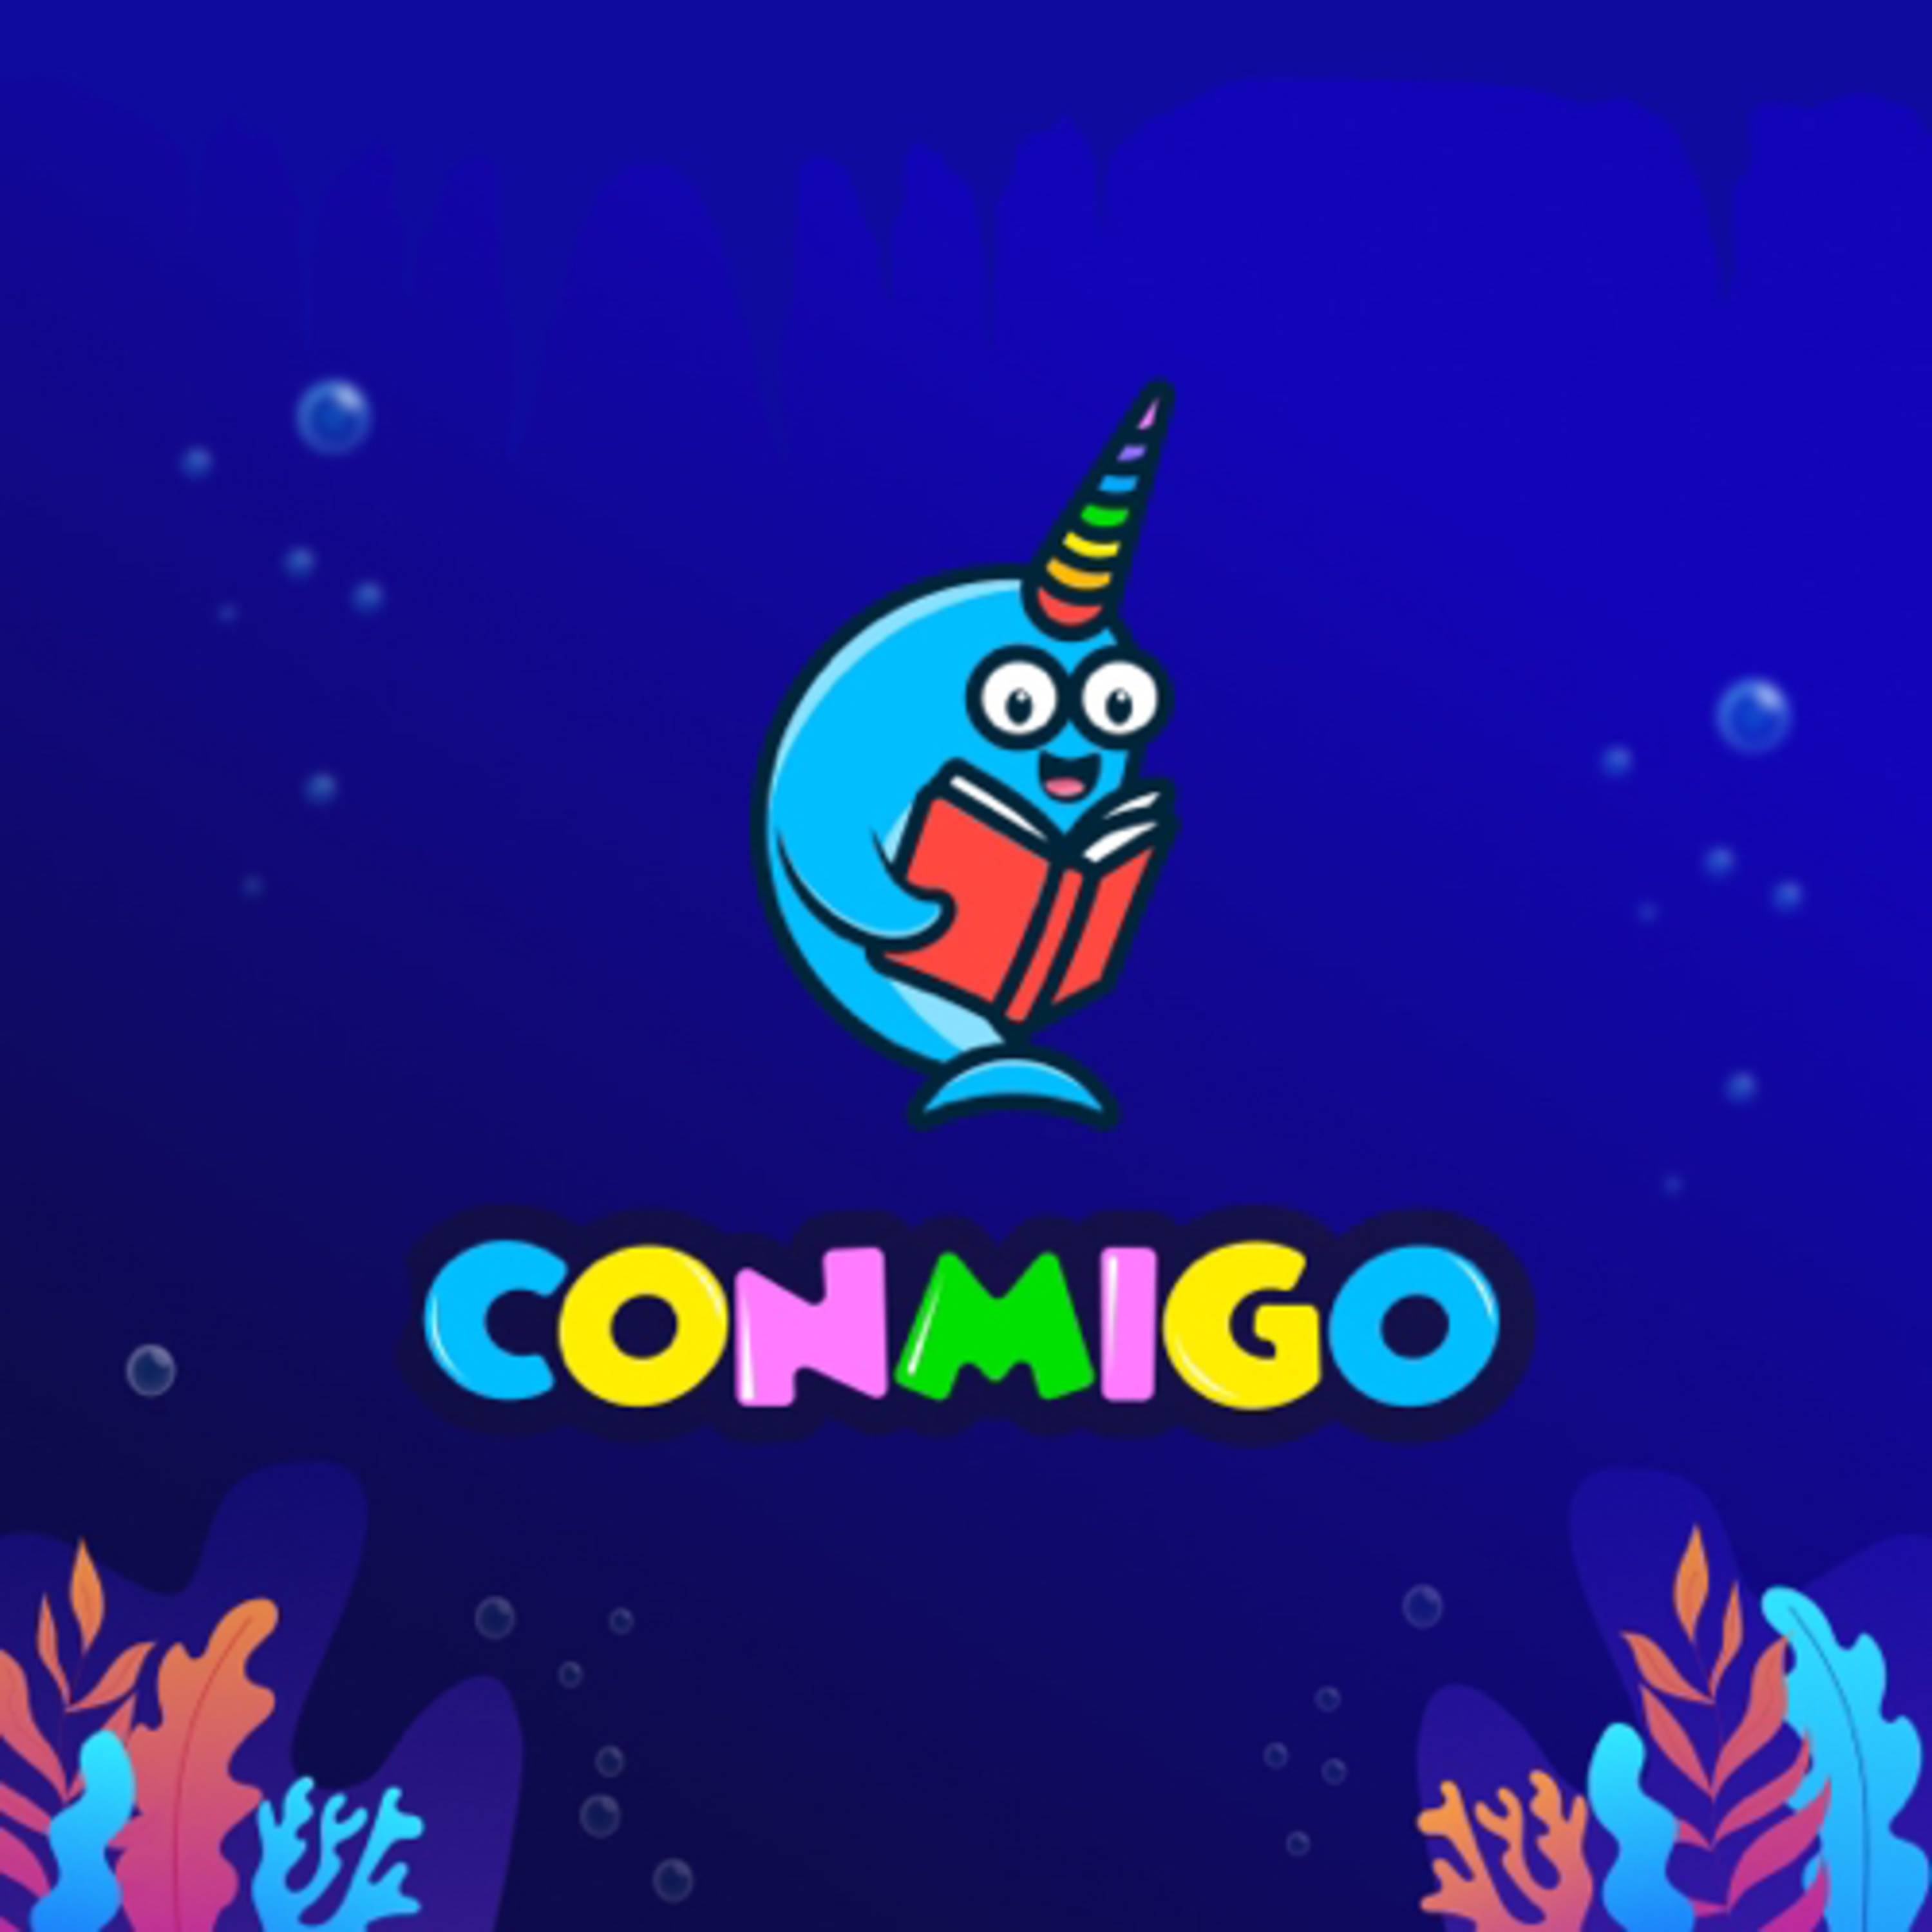 Conmigo - Audiobooks for Kids